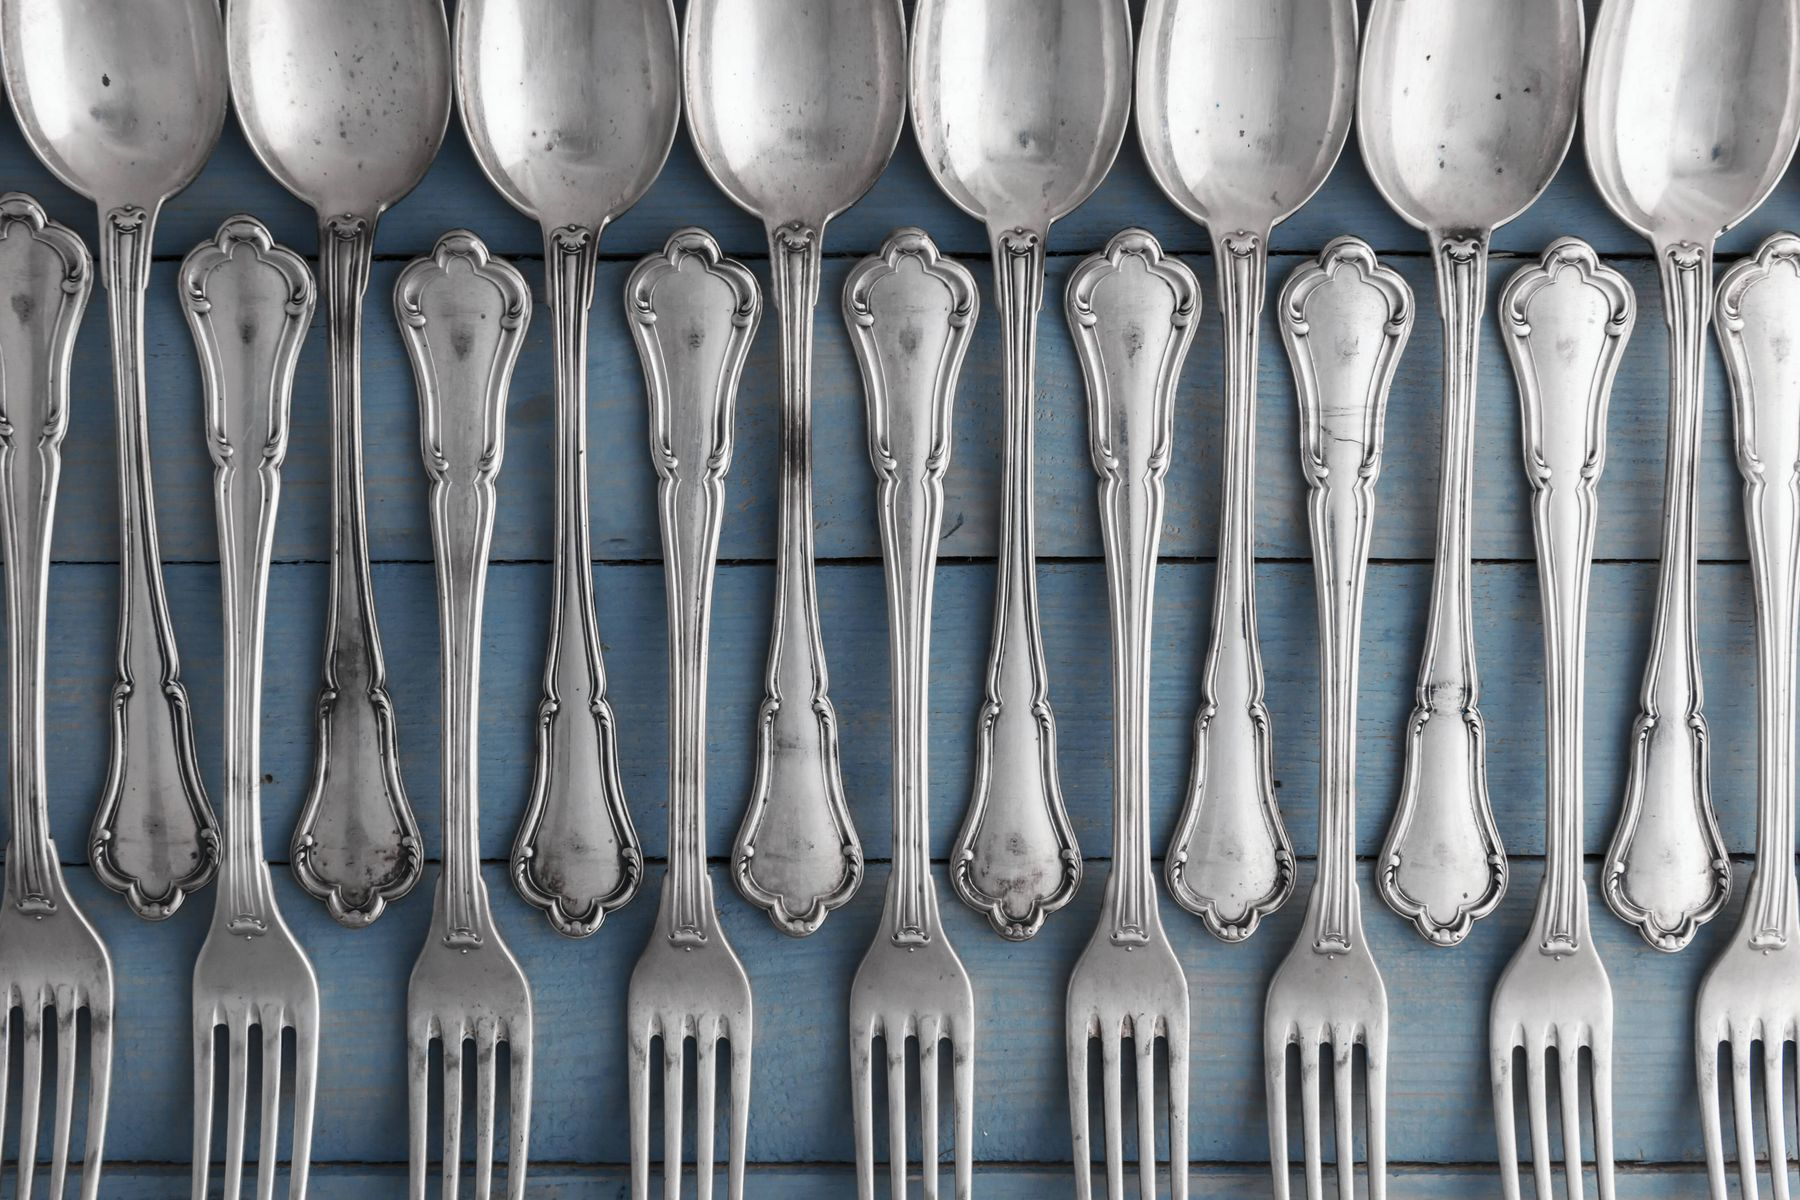 Things you should and should not do if you own a set of beautiful silverware